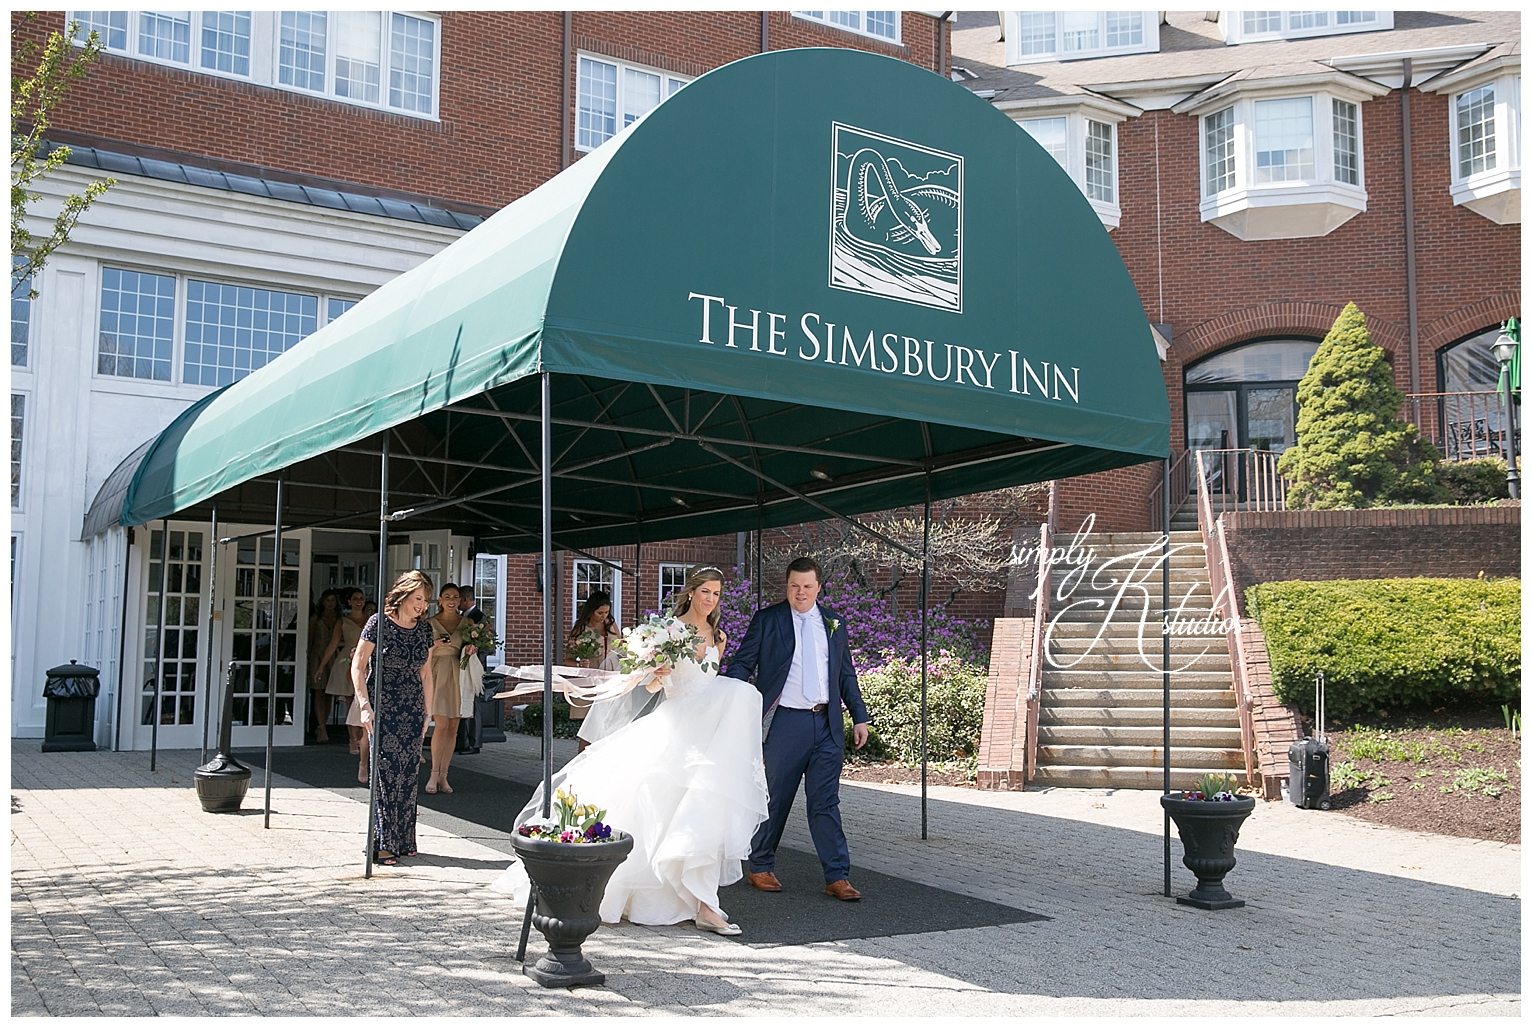 The Simsbury Inn Wedding.jpg